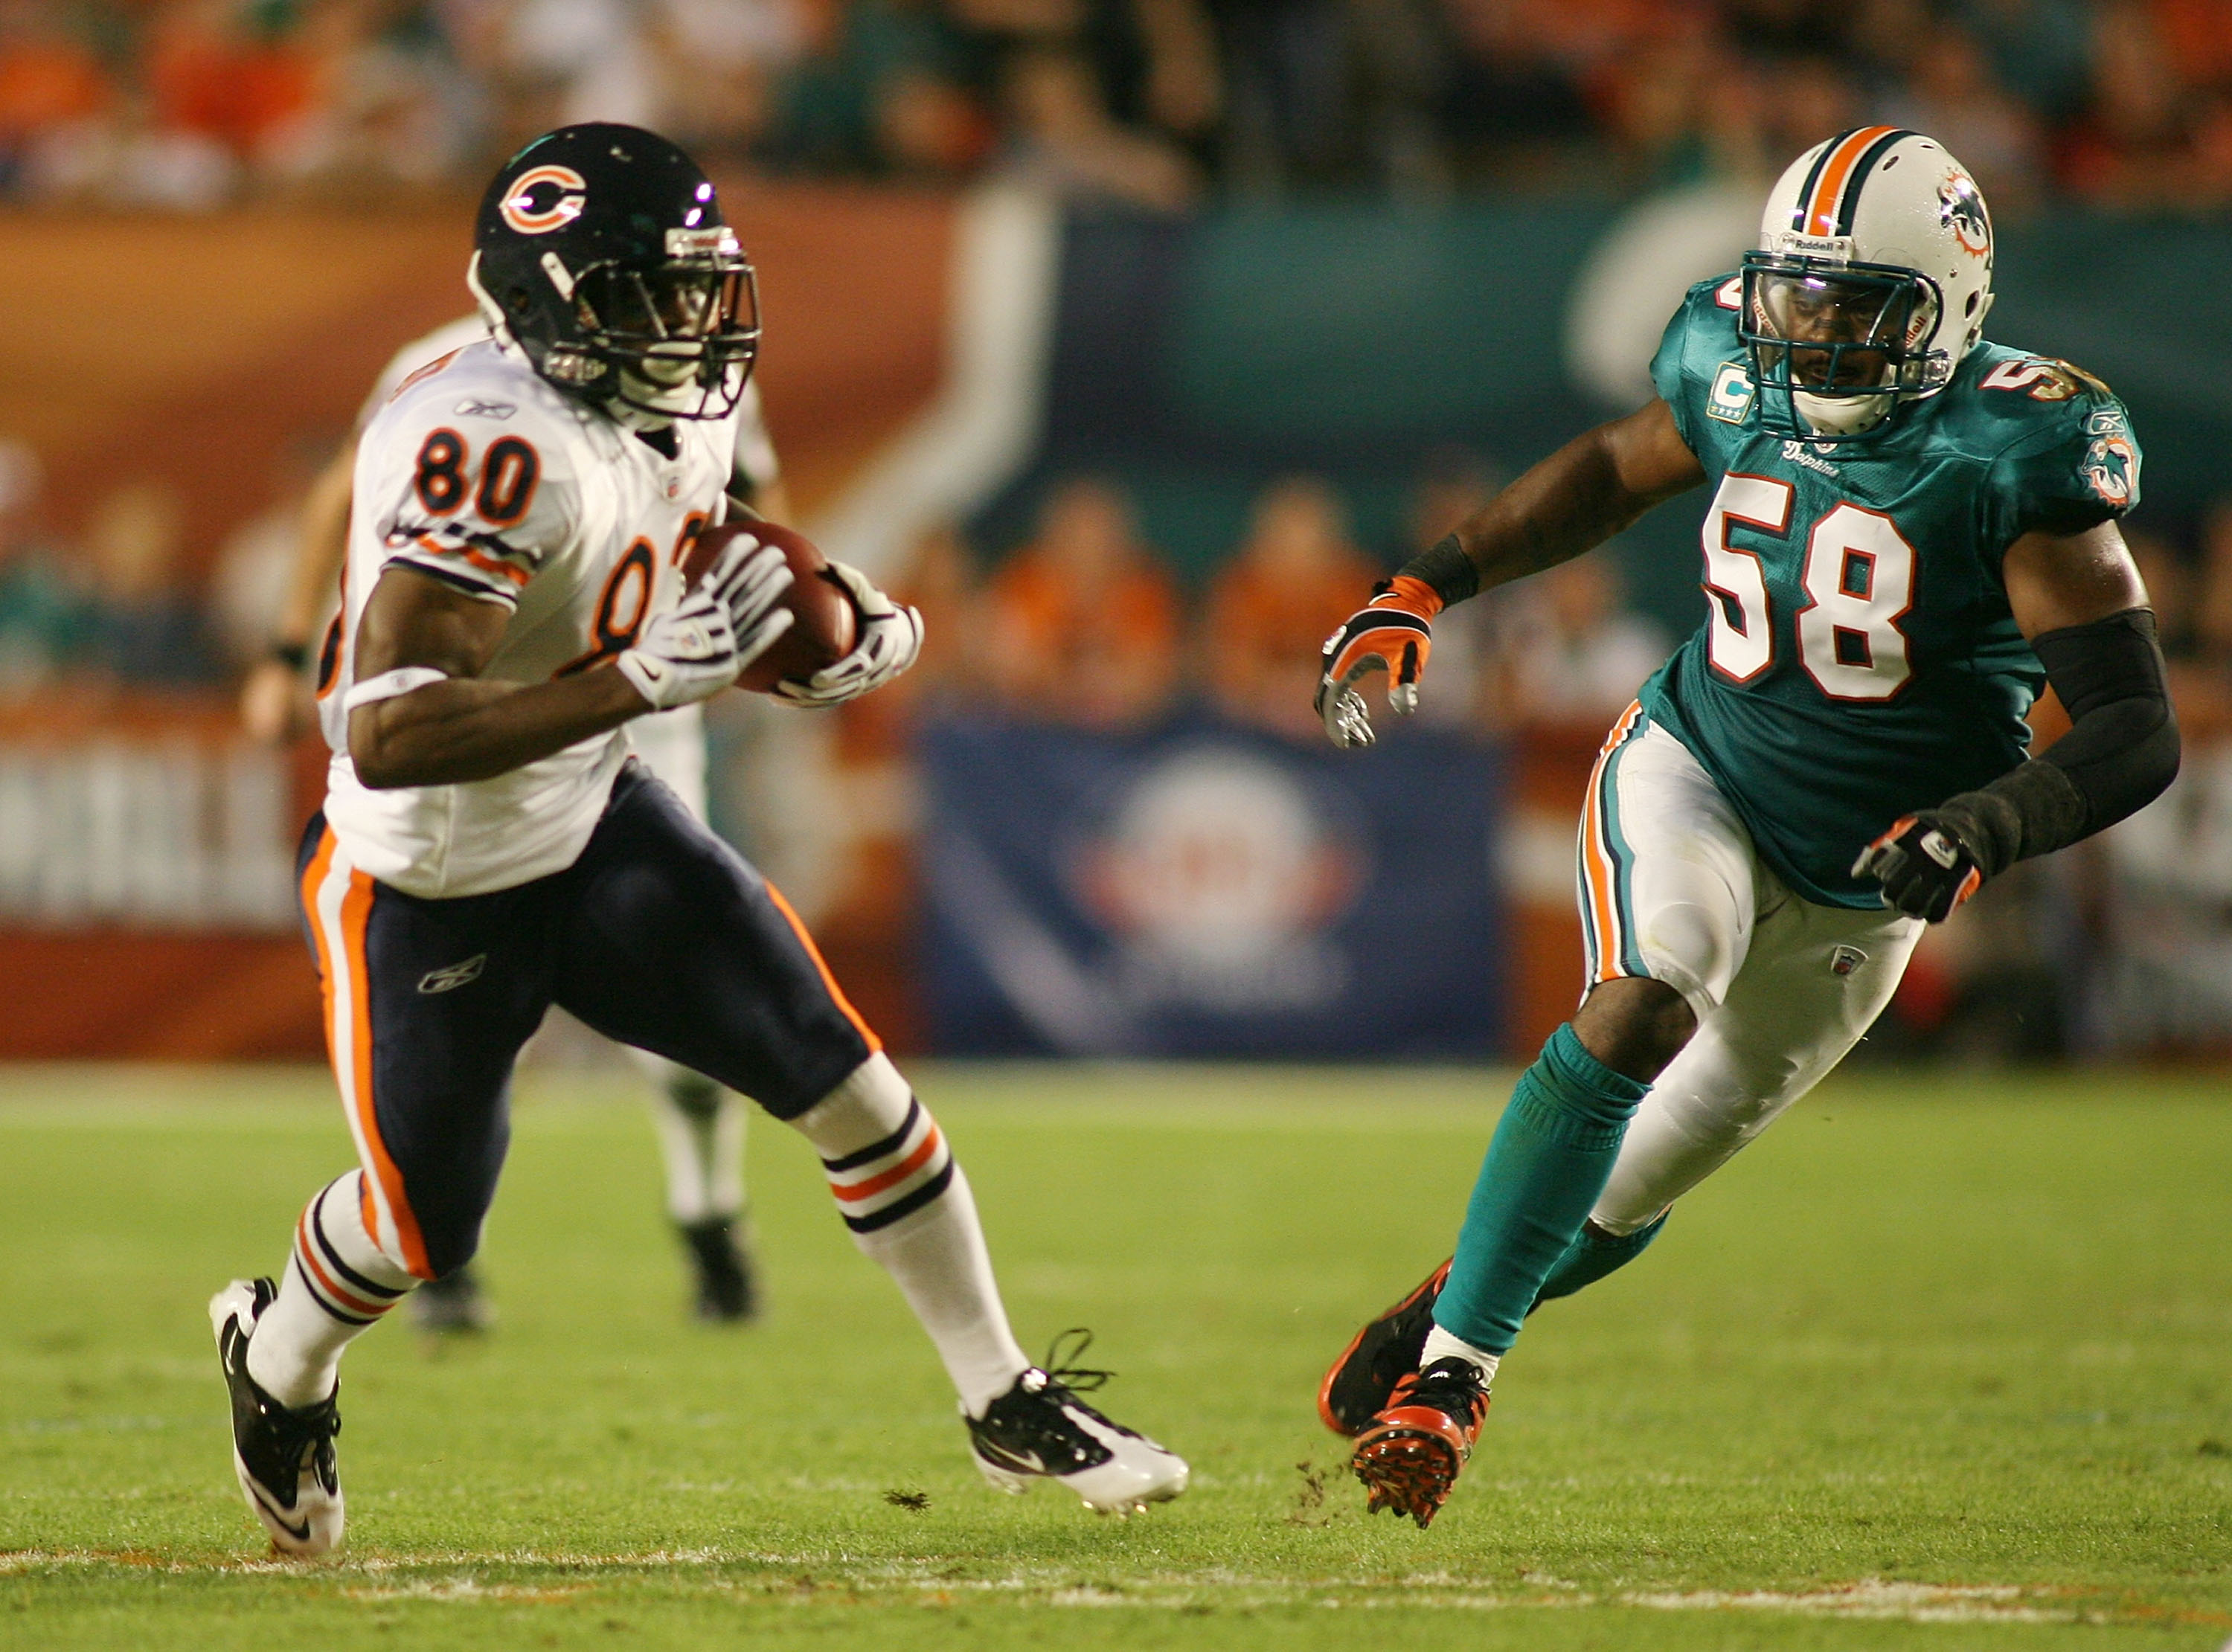 MIAMI - NOVEMBER 18:  Receiver Earl Bennett #80 of the Chicago Bears runs from linebacker Karlos Dansby #58 of the Miami Dolphins at Sun Life Stadium on November 18, 2010 in Miami, Florida.  (Photo by Marc Serota/Getty Images)